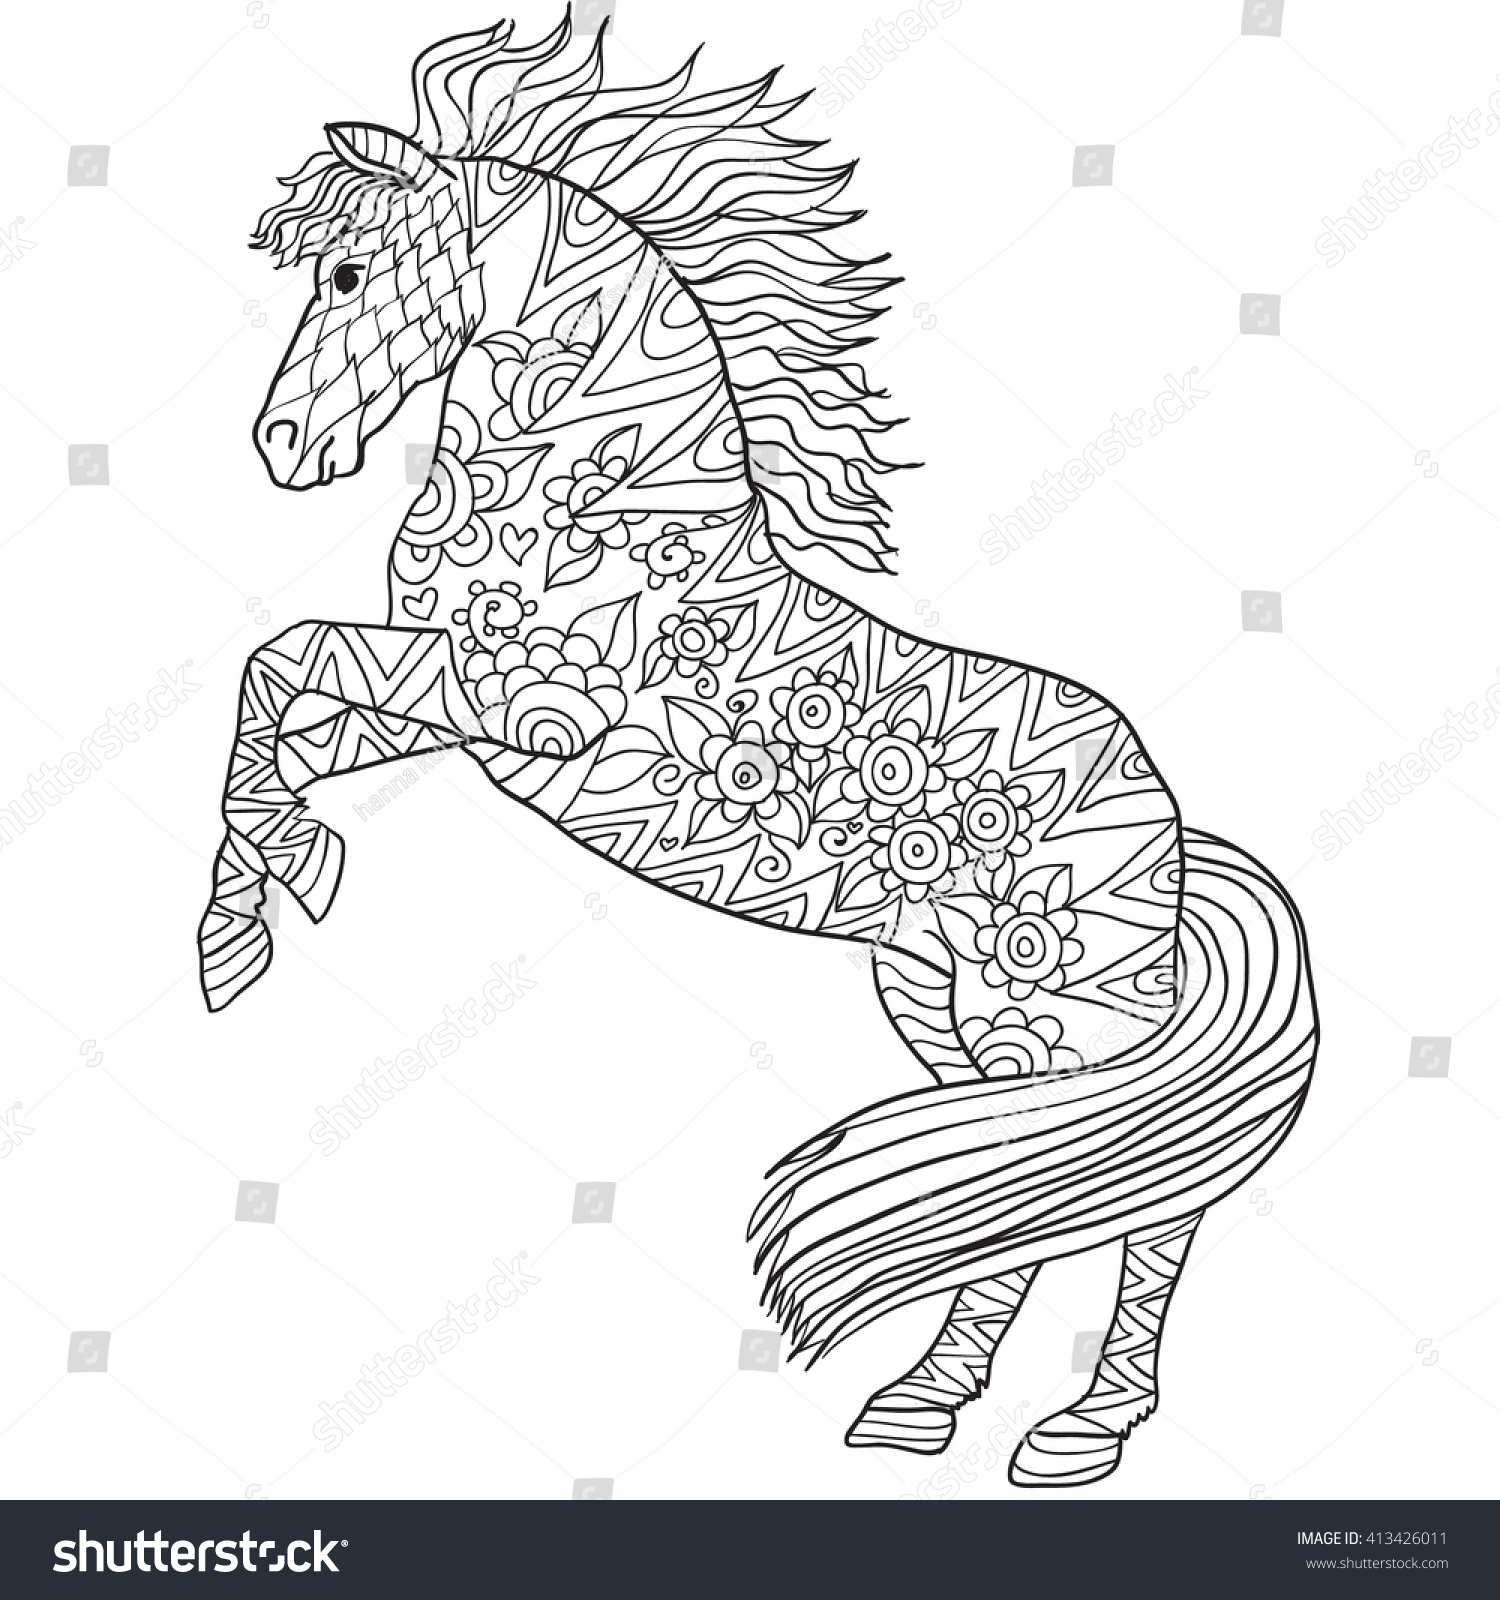 Hand Drawn Coloring Pages Horse Illustration Stock Vector 413426011 ...